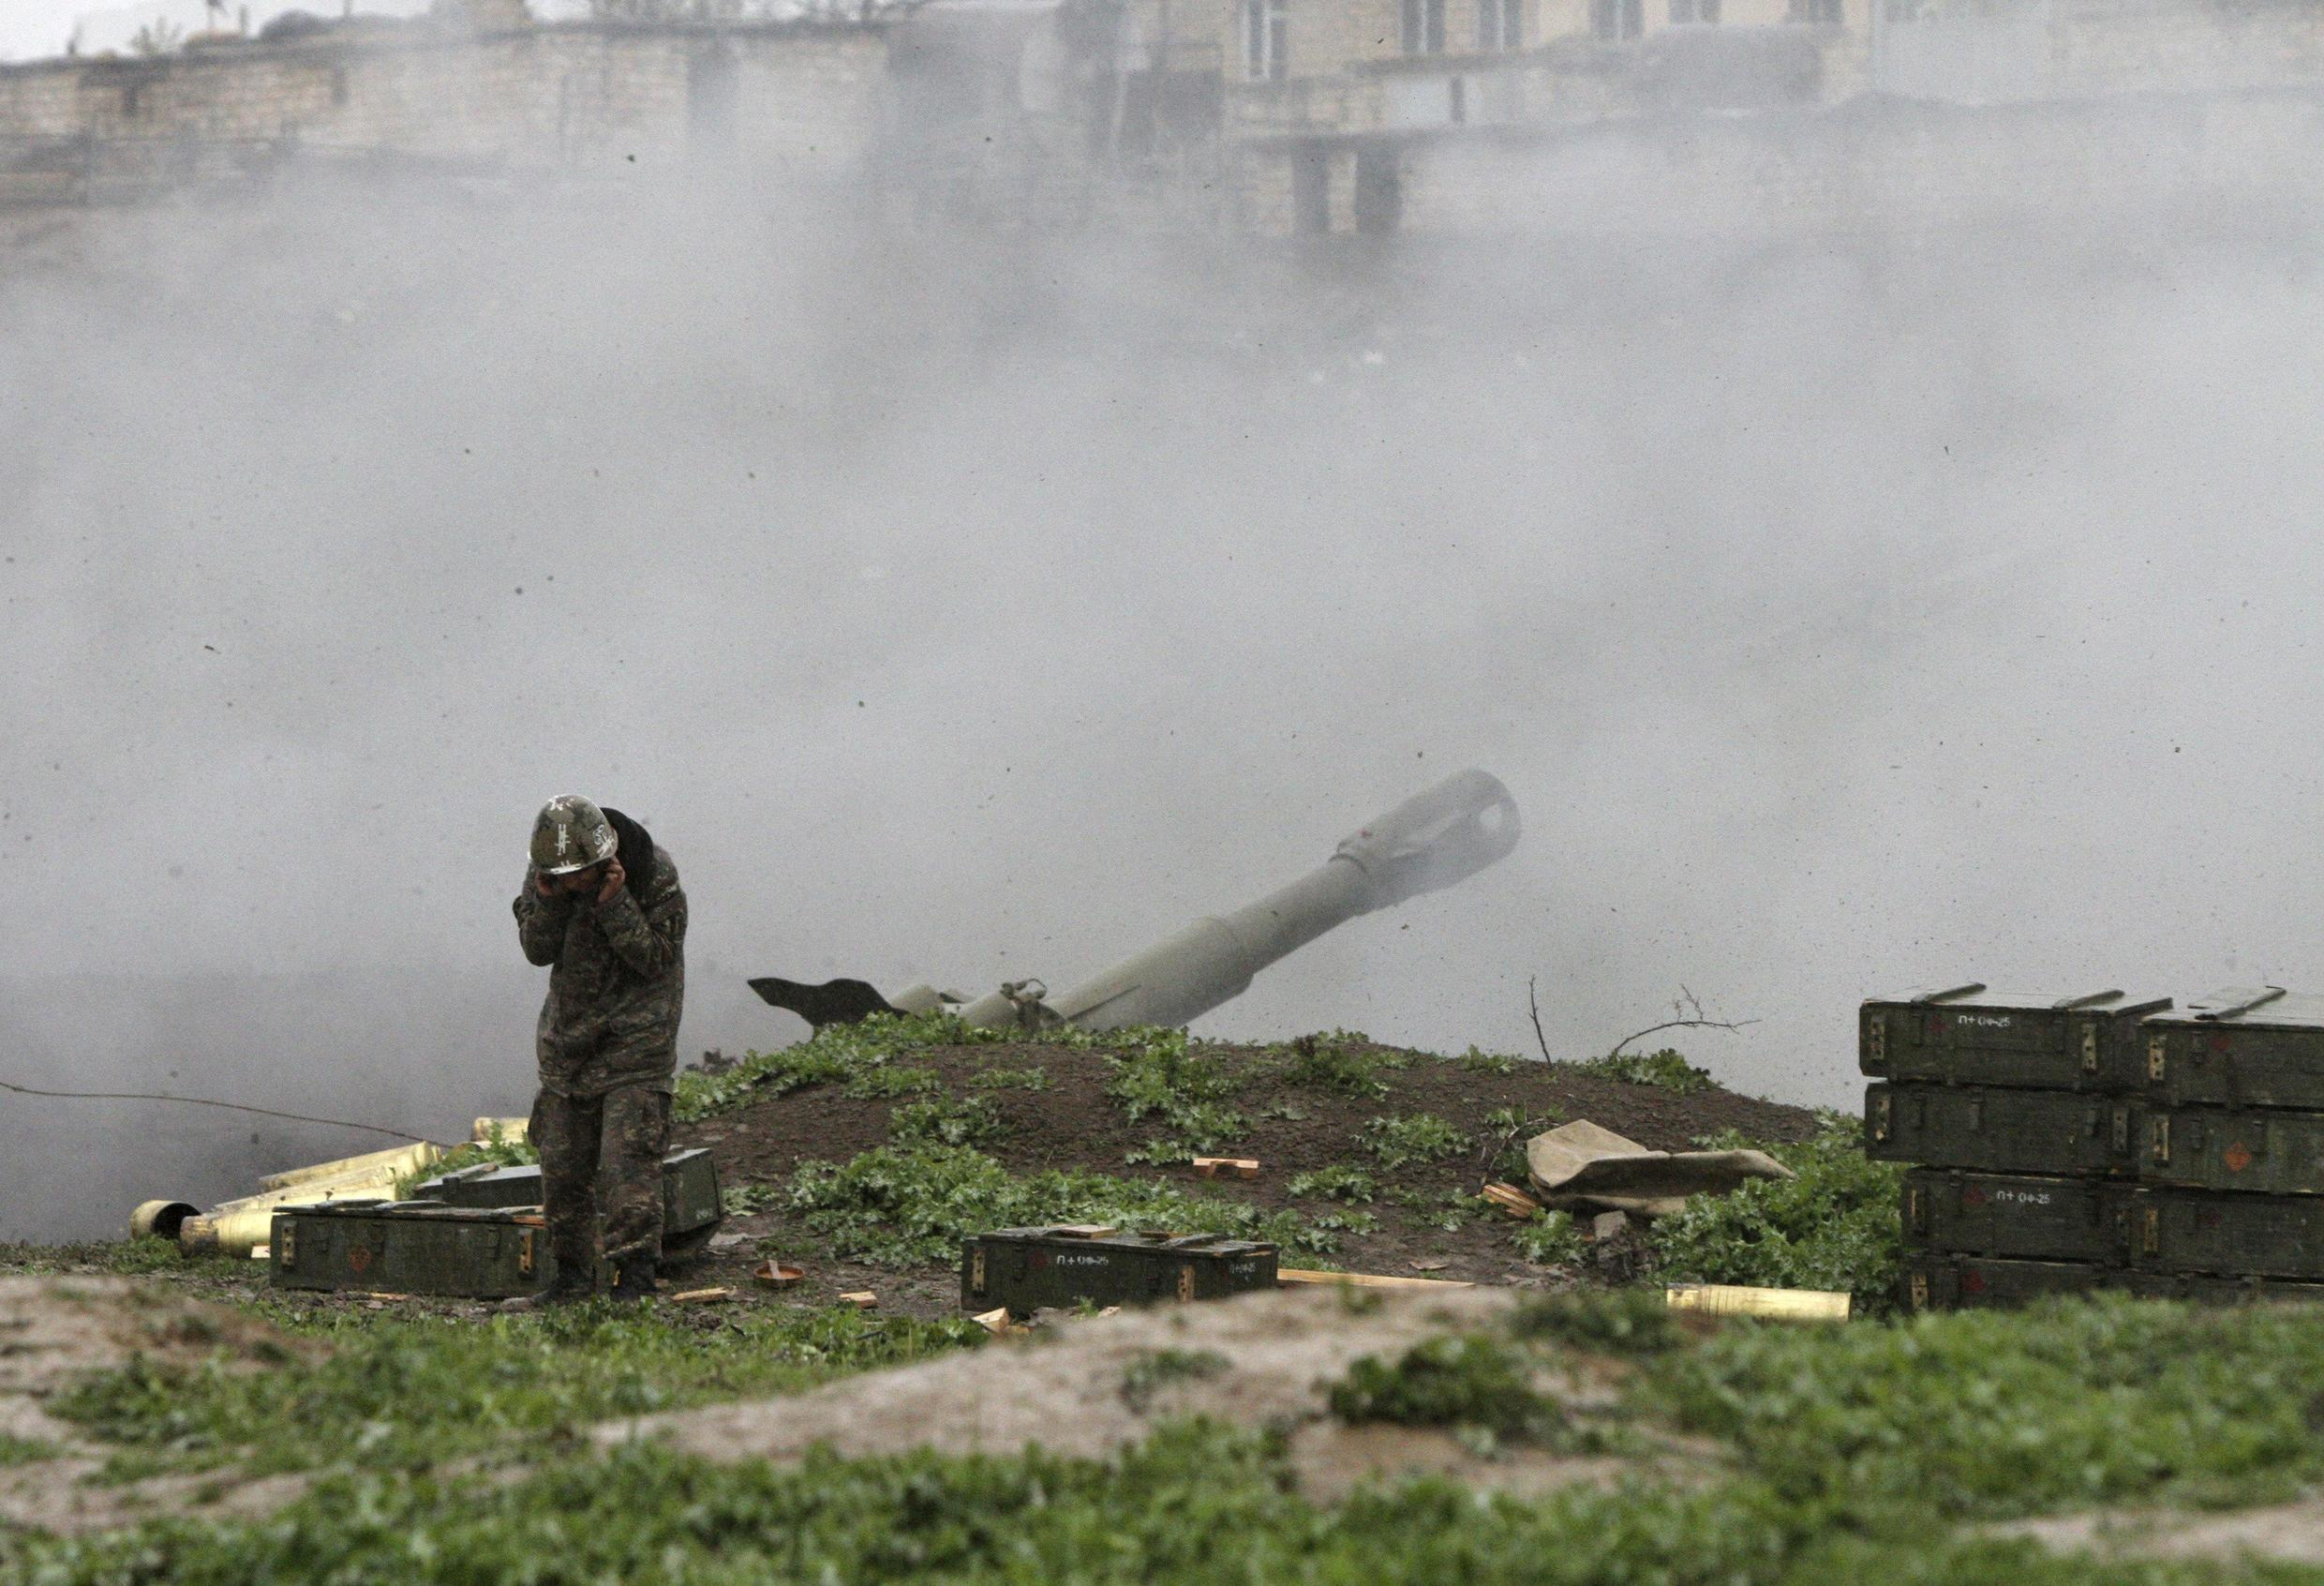 An Armenian serviceman of the self-defense army of Nagorno-Karabakh launch artillery toward Azeri forces in the town of Martakert in Nagorno-Karabakh region, which is controlled by separatist Armenians, April 3, 2016. REUTERS/Vahram Baghdasaryan/Photolure EDITORIAL USE ONLY. NO RESALES. NO ARCHIVE TPX IMAGES OF THE DAY